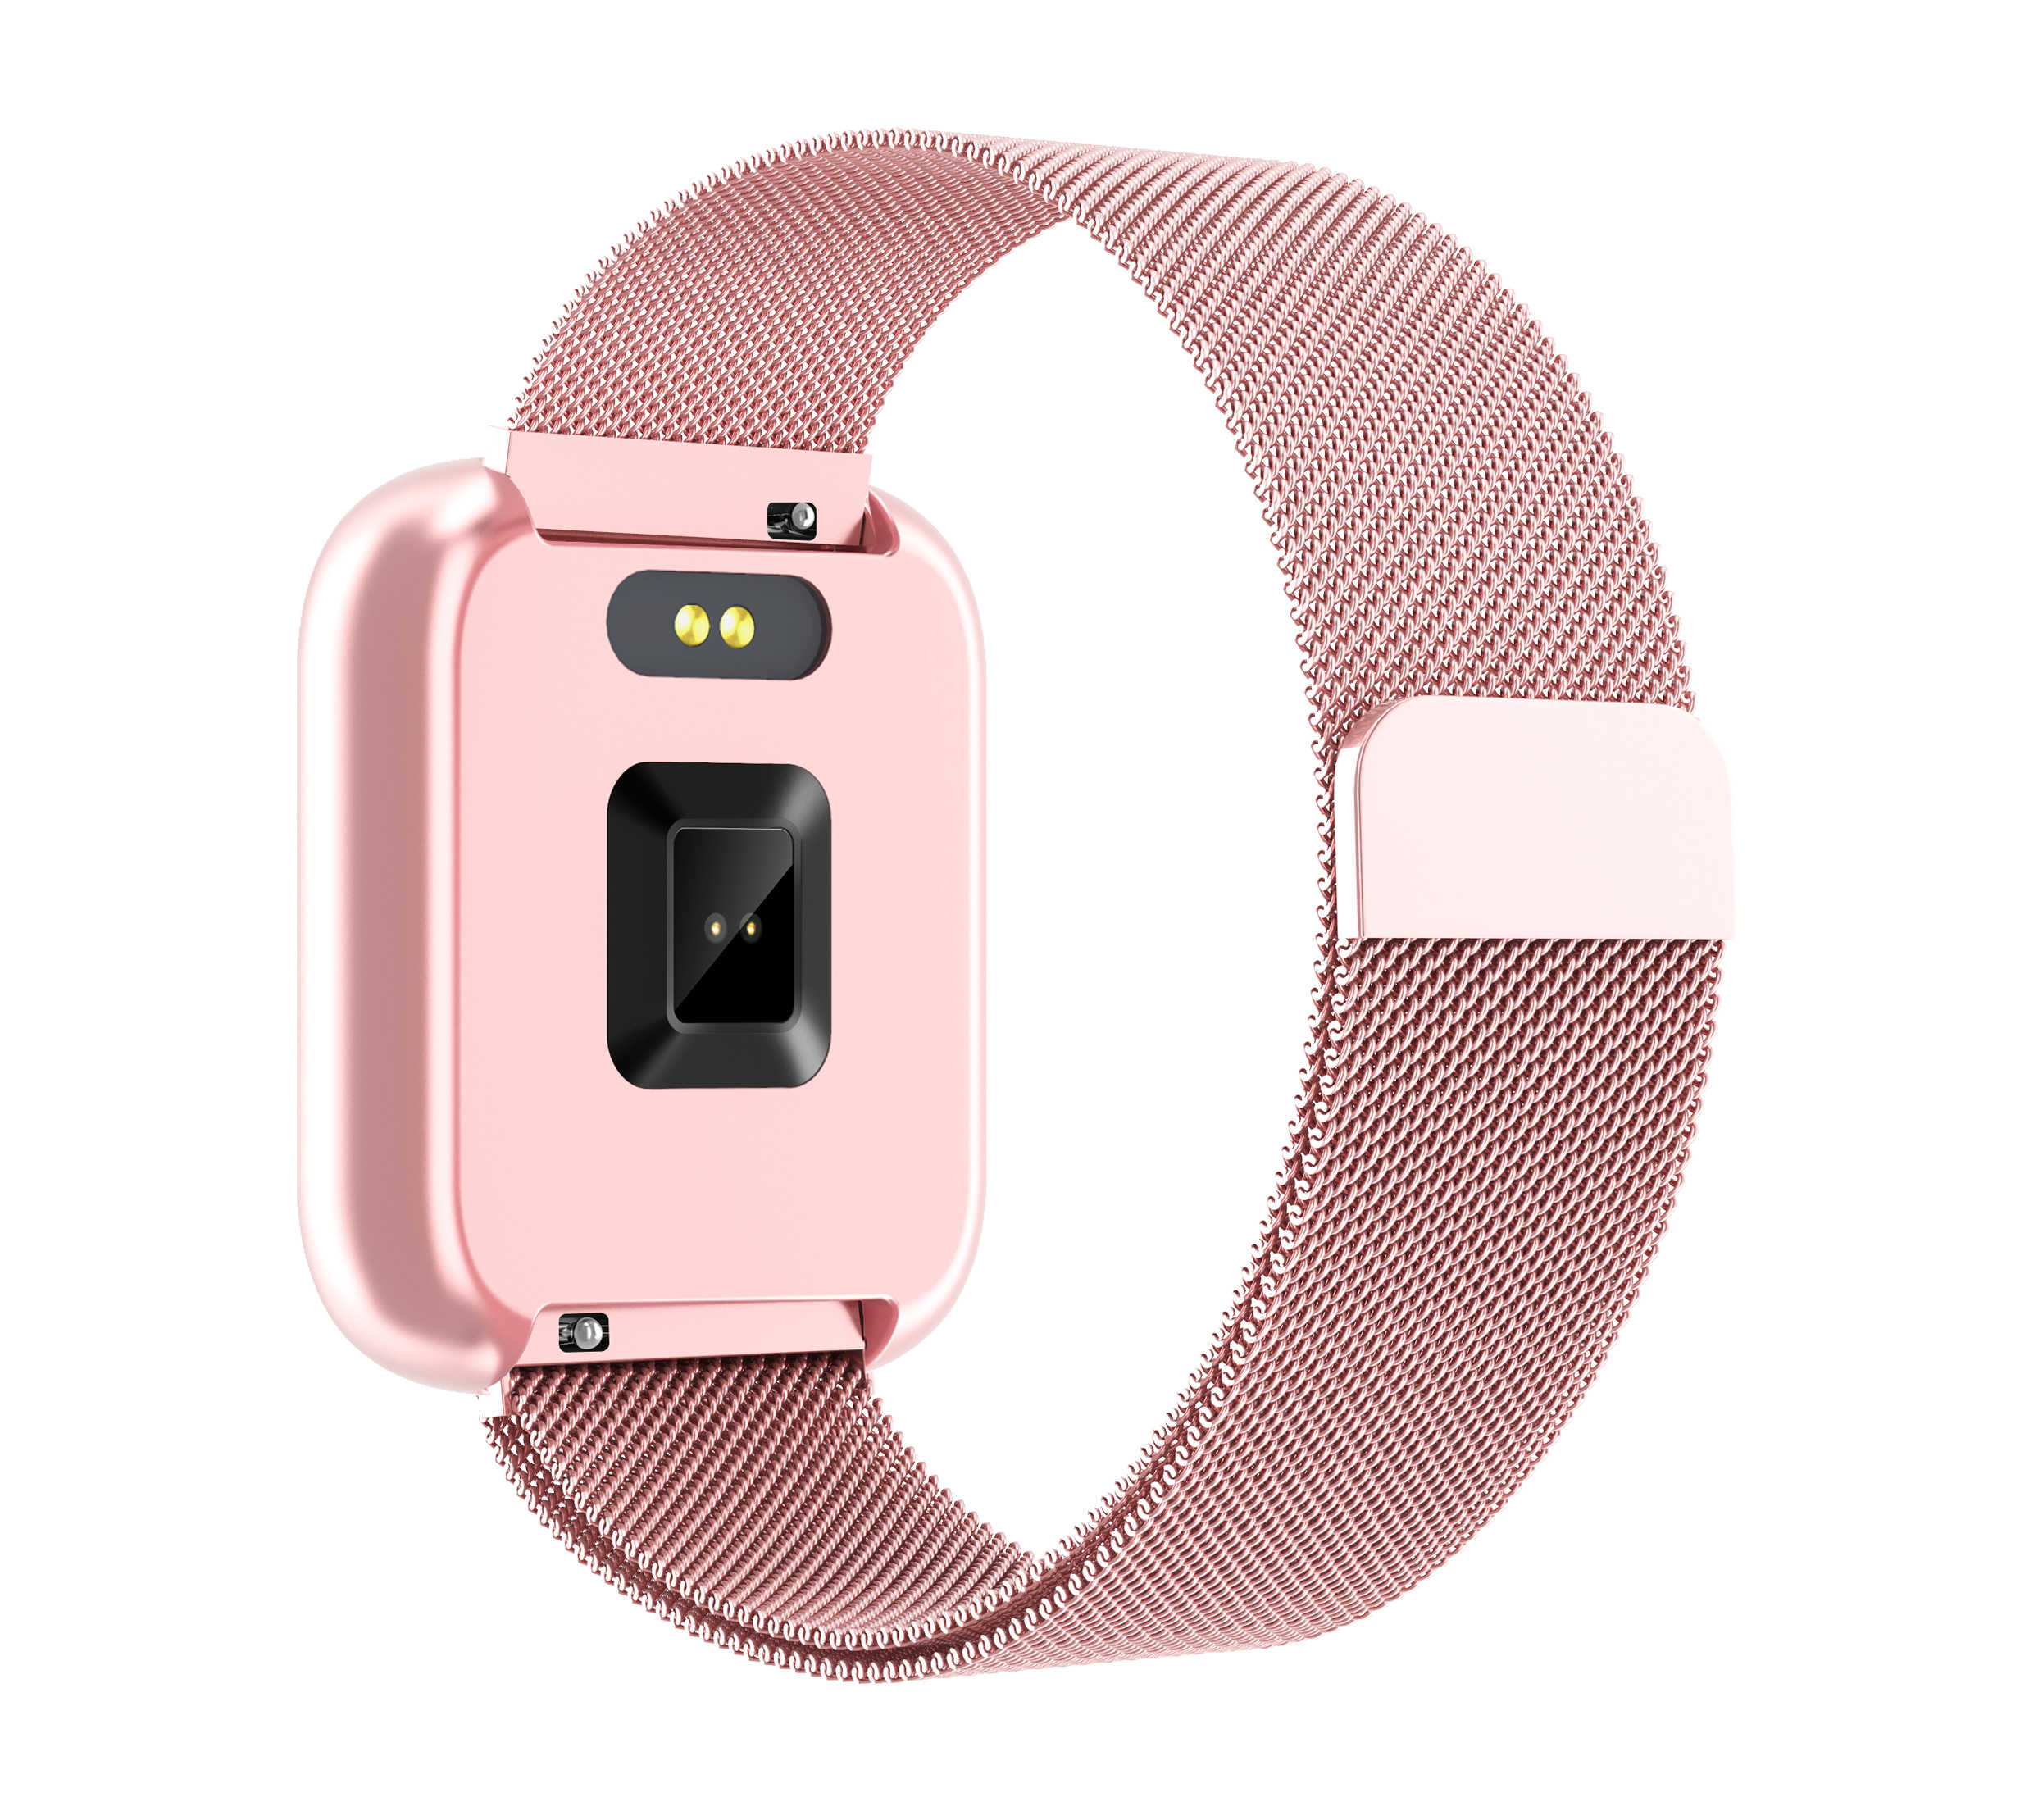 Smart horloge Vervanging band P68 P70 plus T80 Y6 pro armband Siliconen Band Roestvrij Staal Magnetische Band Voor Mannen vrouwen